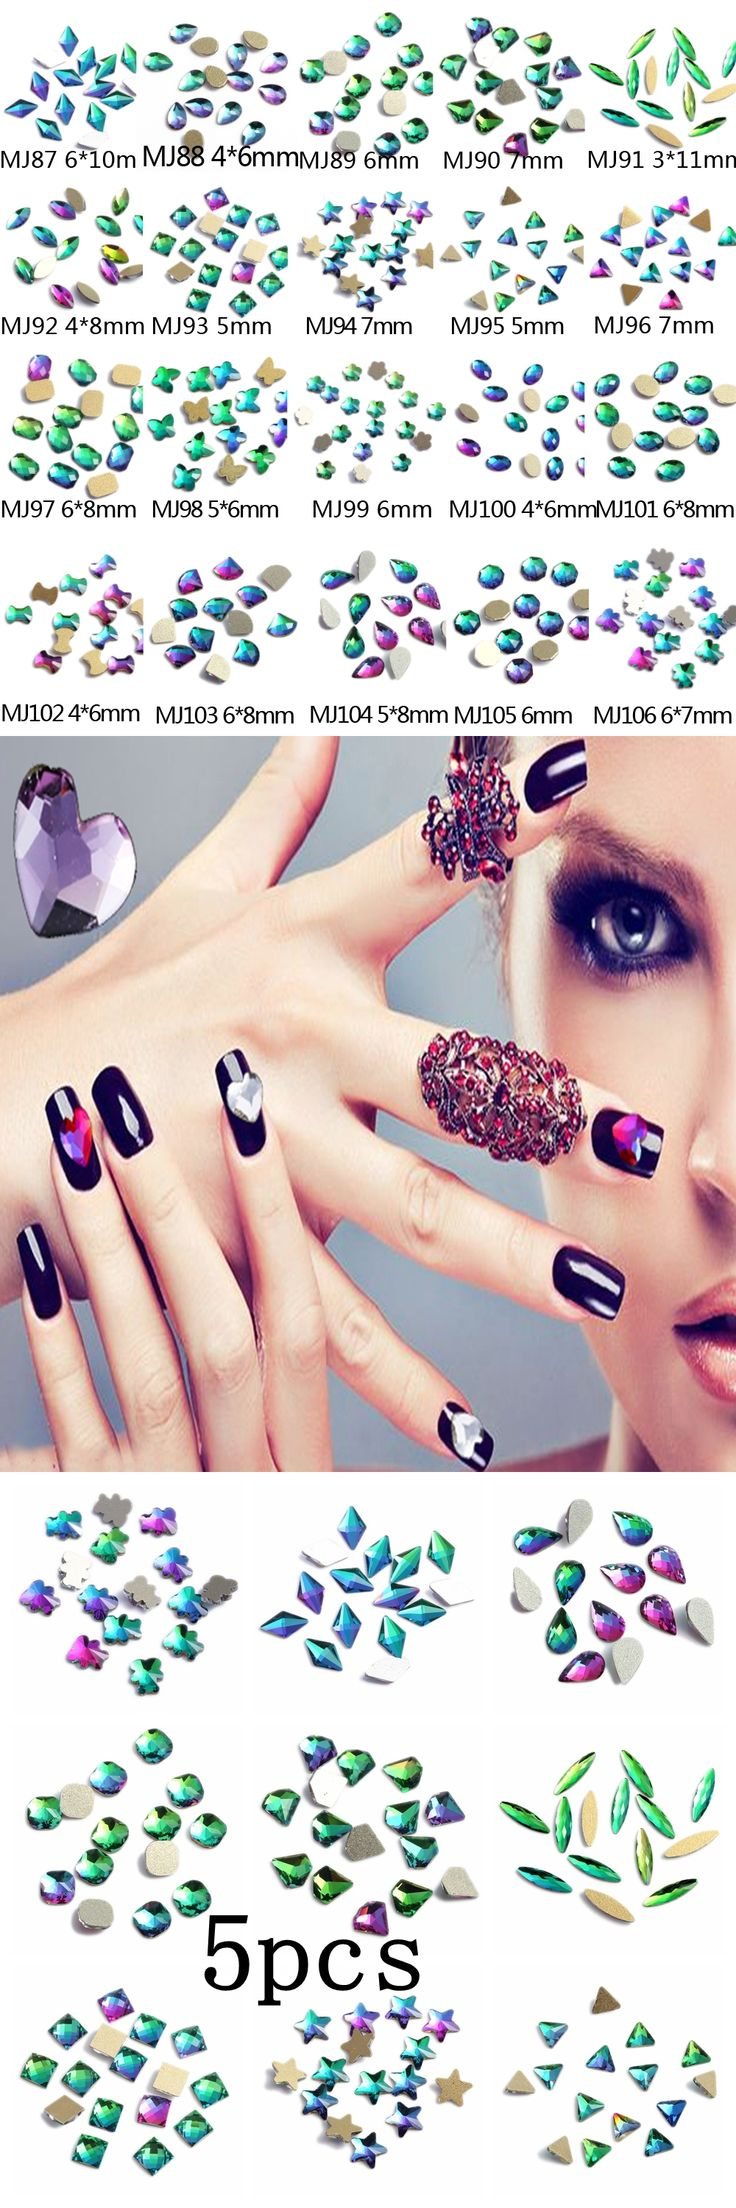 769 best Nails & Tools images on Pinterest